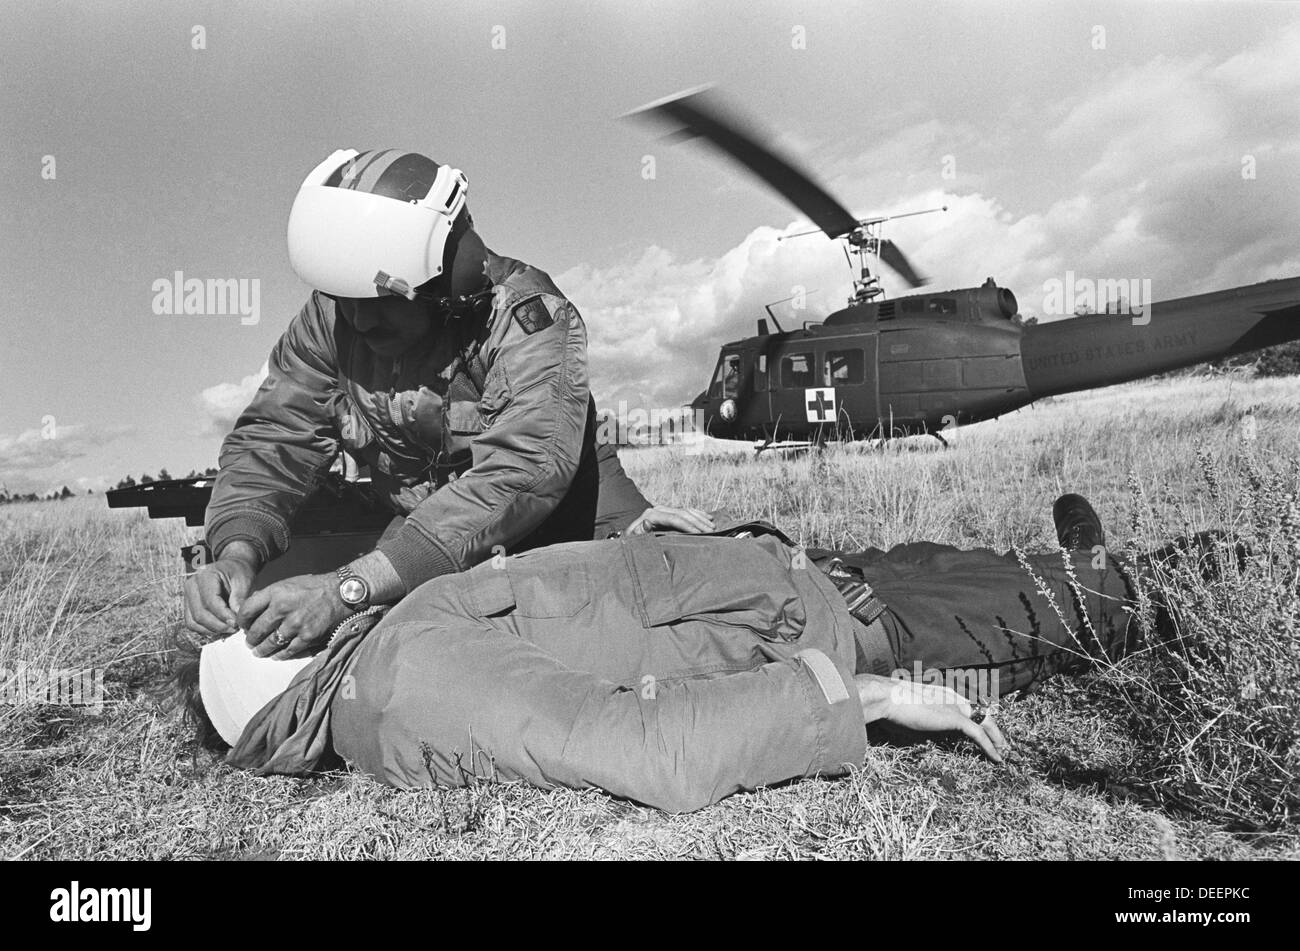 A New Mexico Air National Guard helicopter rescues an injured hunter from a mountaintop in northern New Mexico, circa 1976 - Stock Image